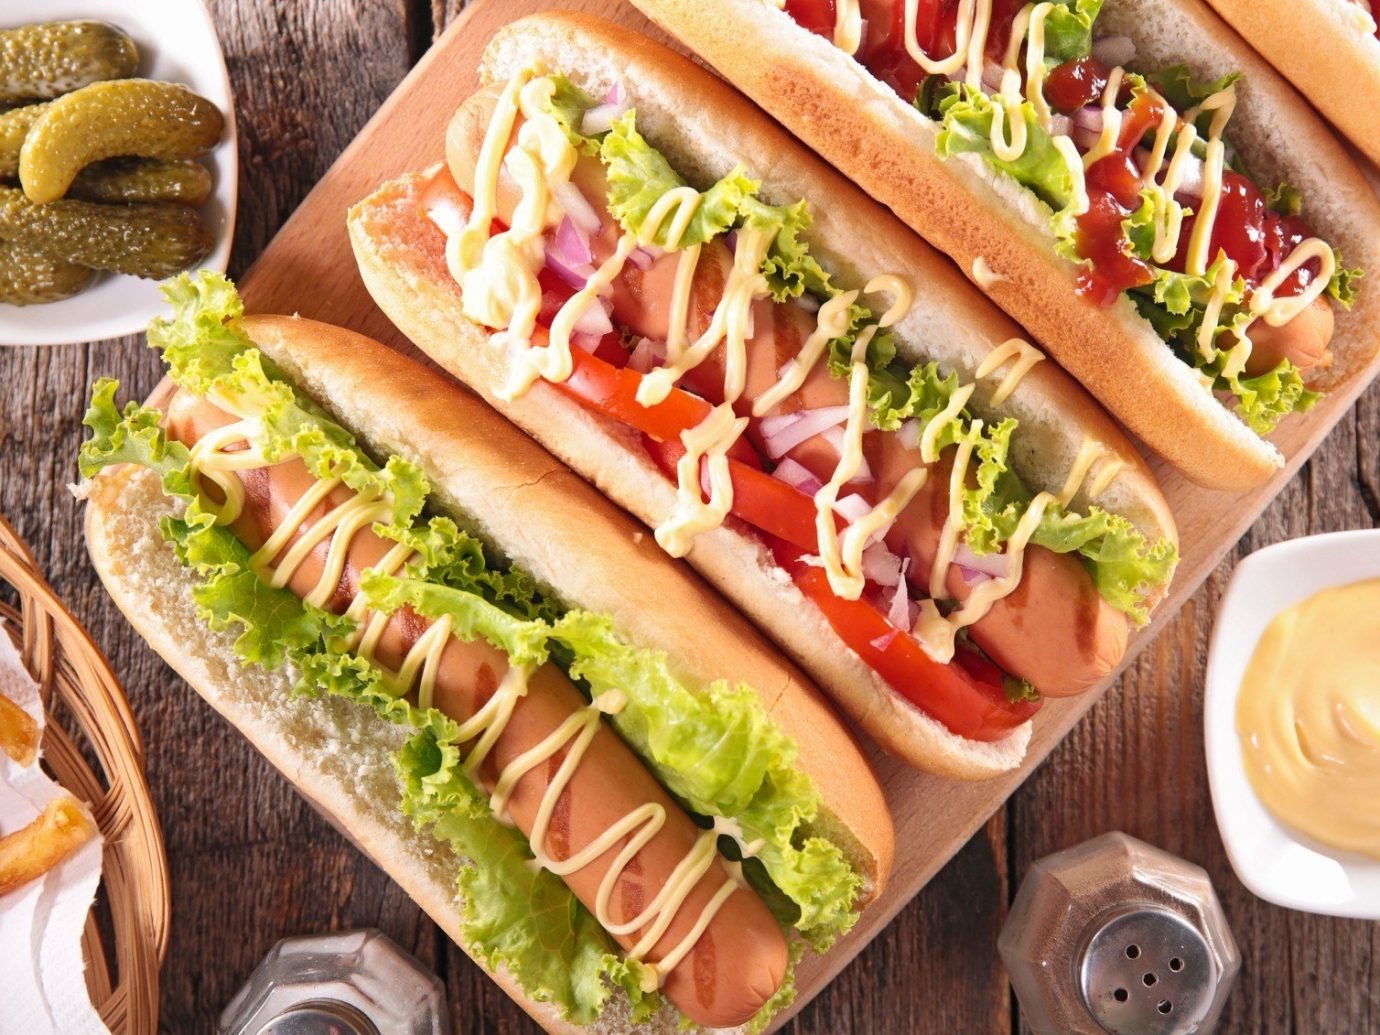 Food + Drink Dog hot snack food sandwich food dish bánh mì submarine sandwich hot dog couple meat produce lunch toppings